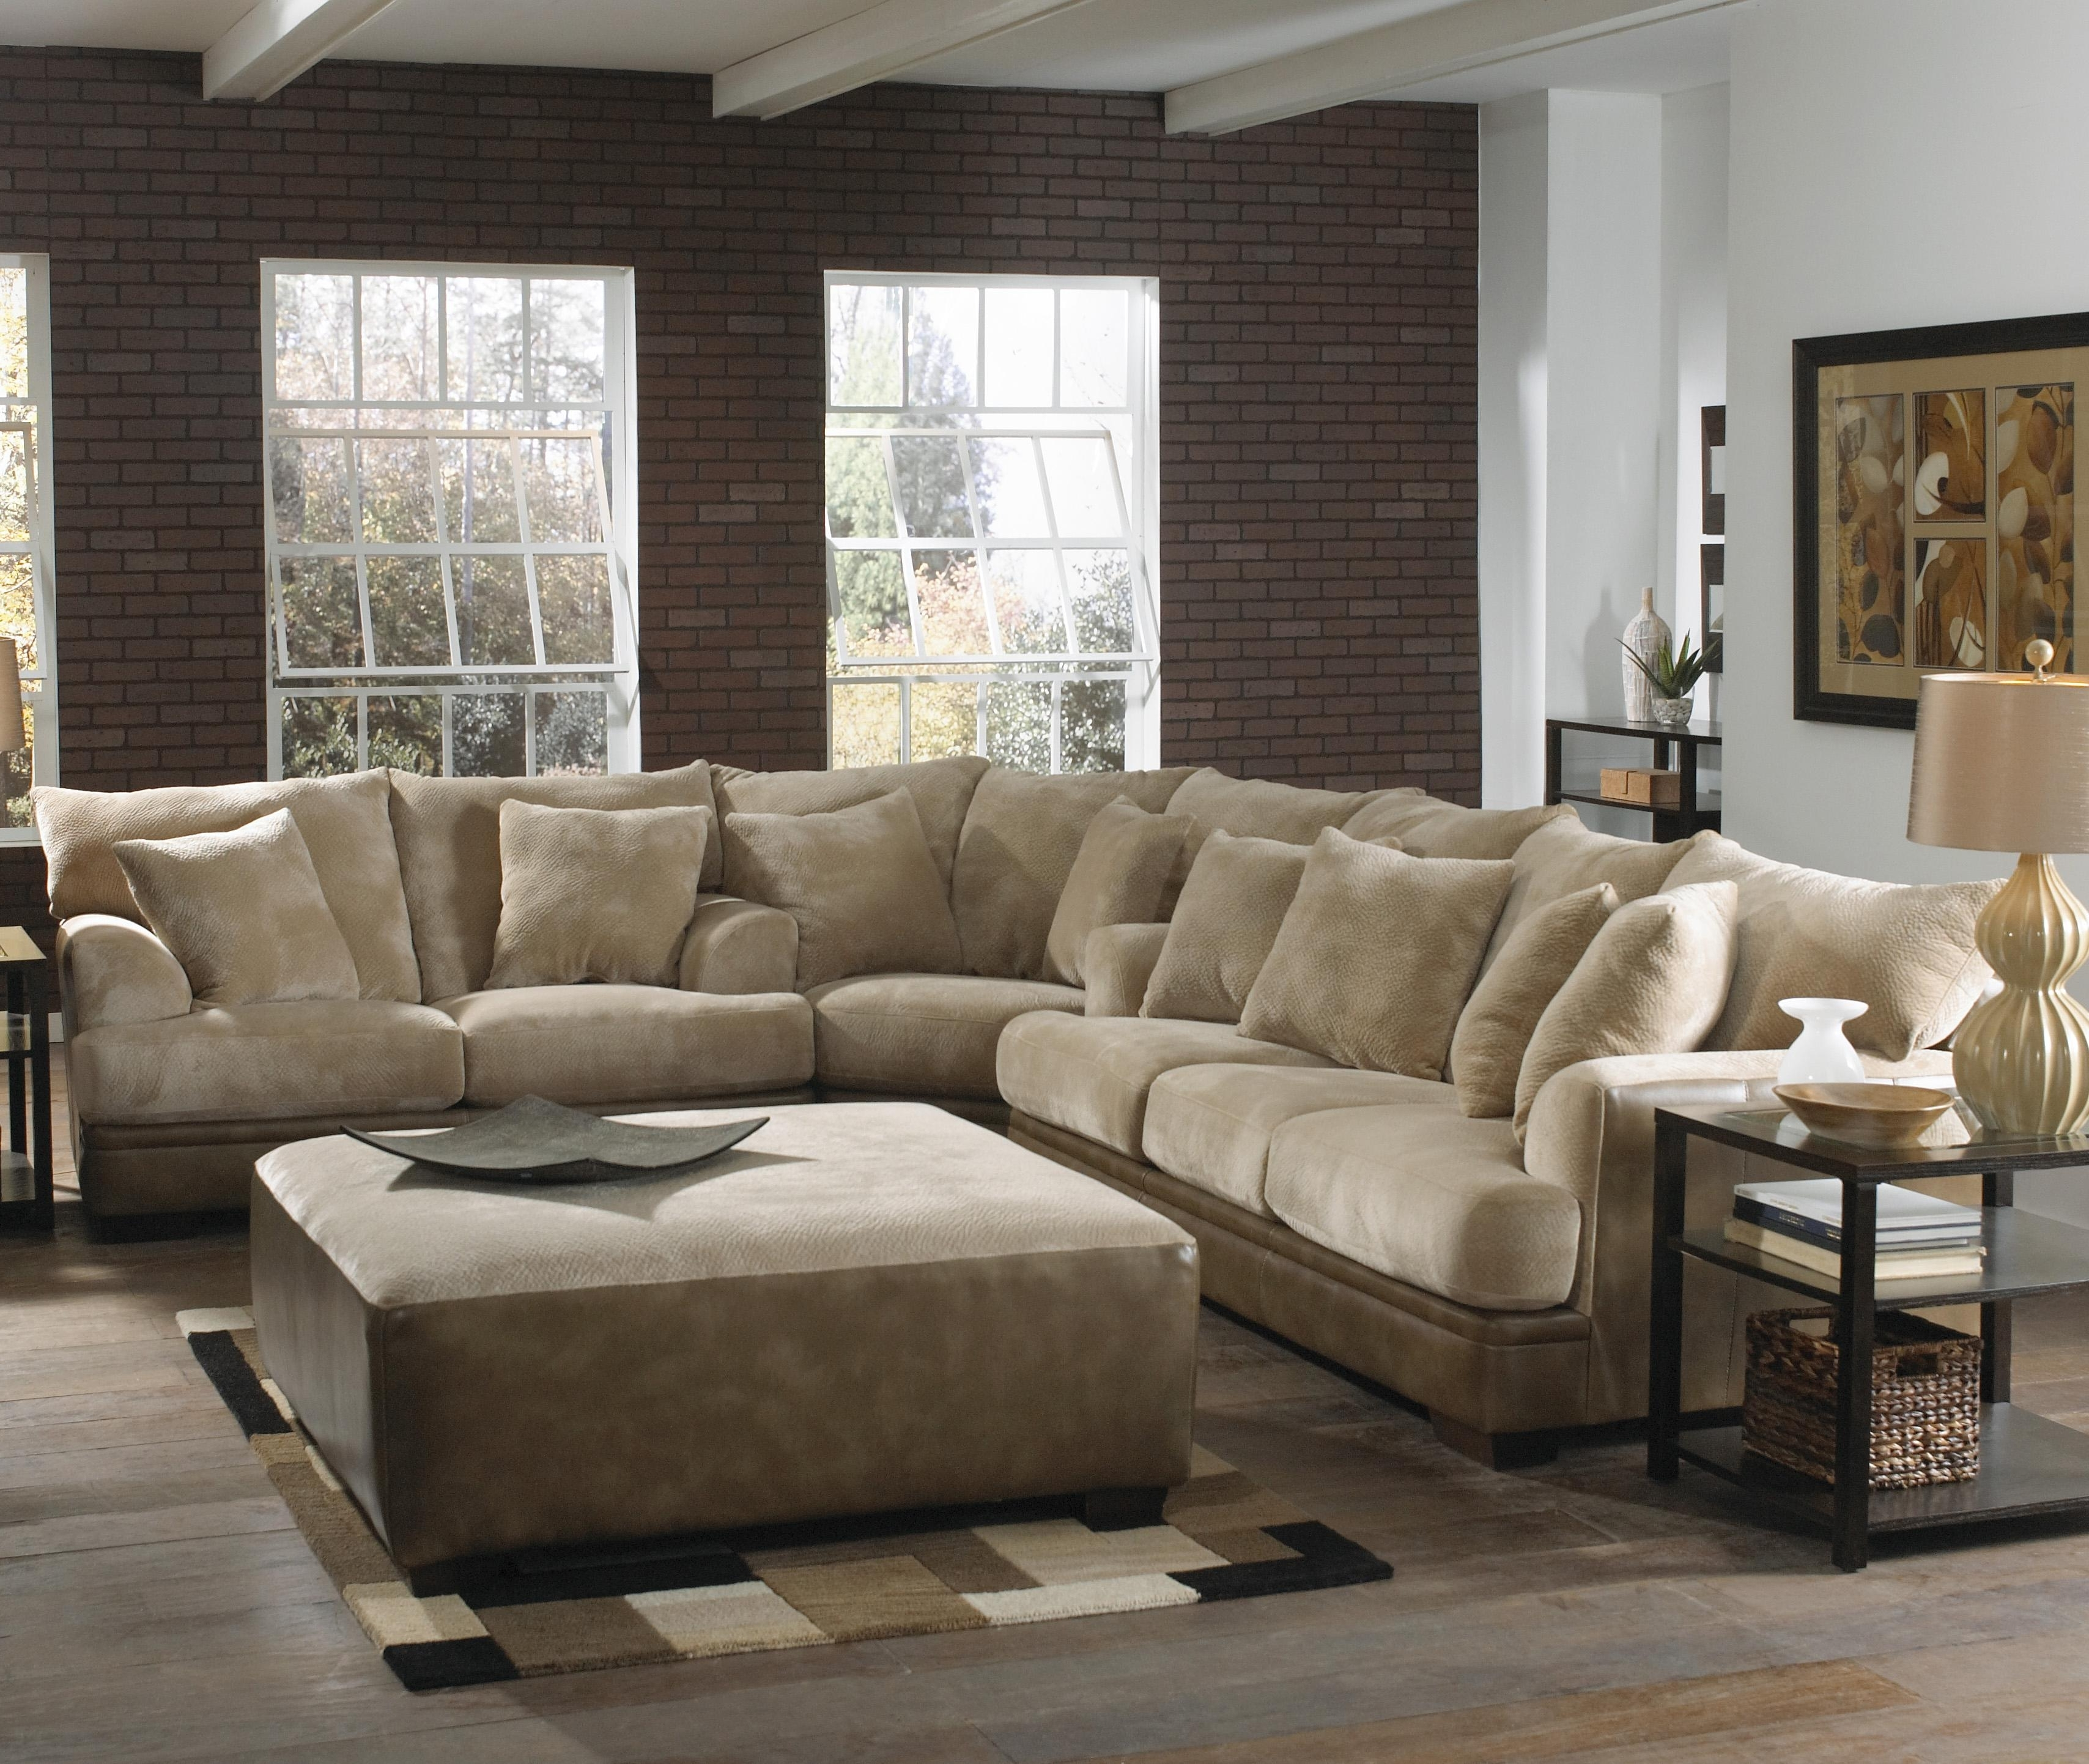 Most Popular Marvelous Large Sectional Sofa With Ottoman For Your Sofas Amazing With Regard To Couches With Large Ottoman (View 14 of 20)